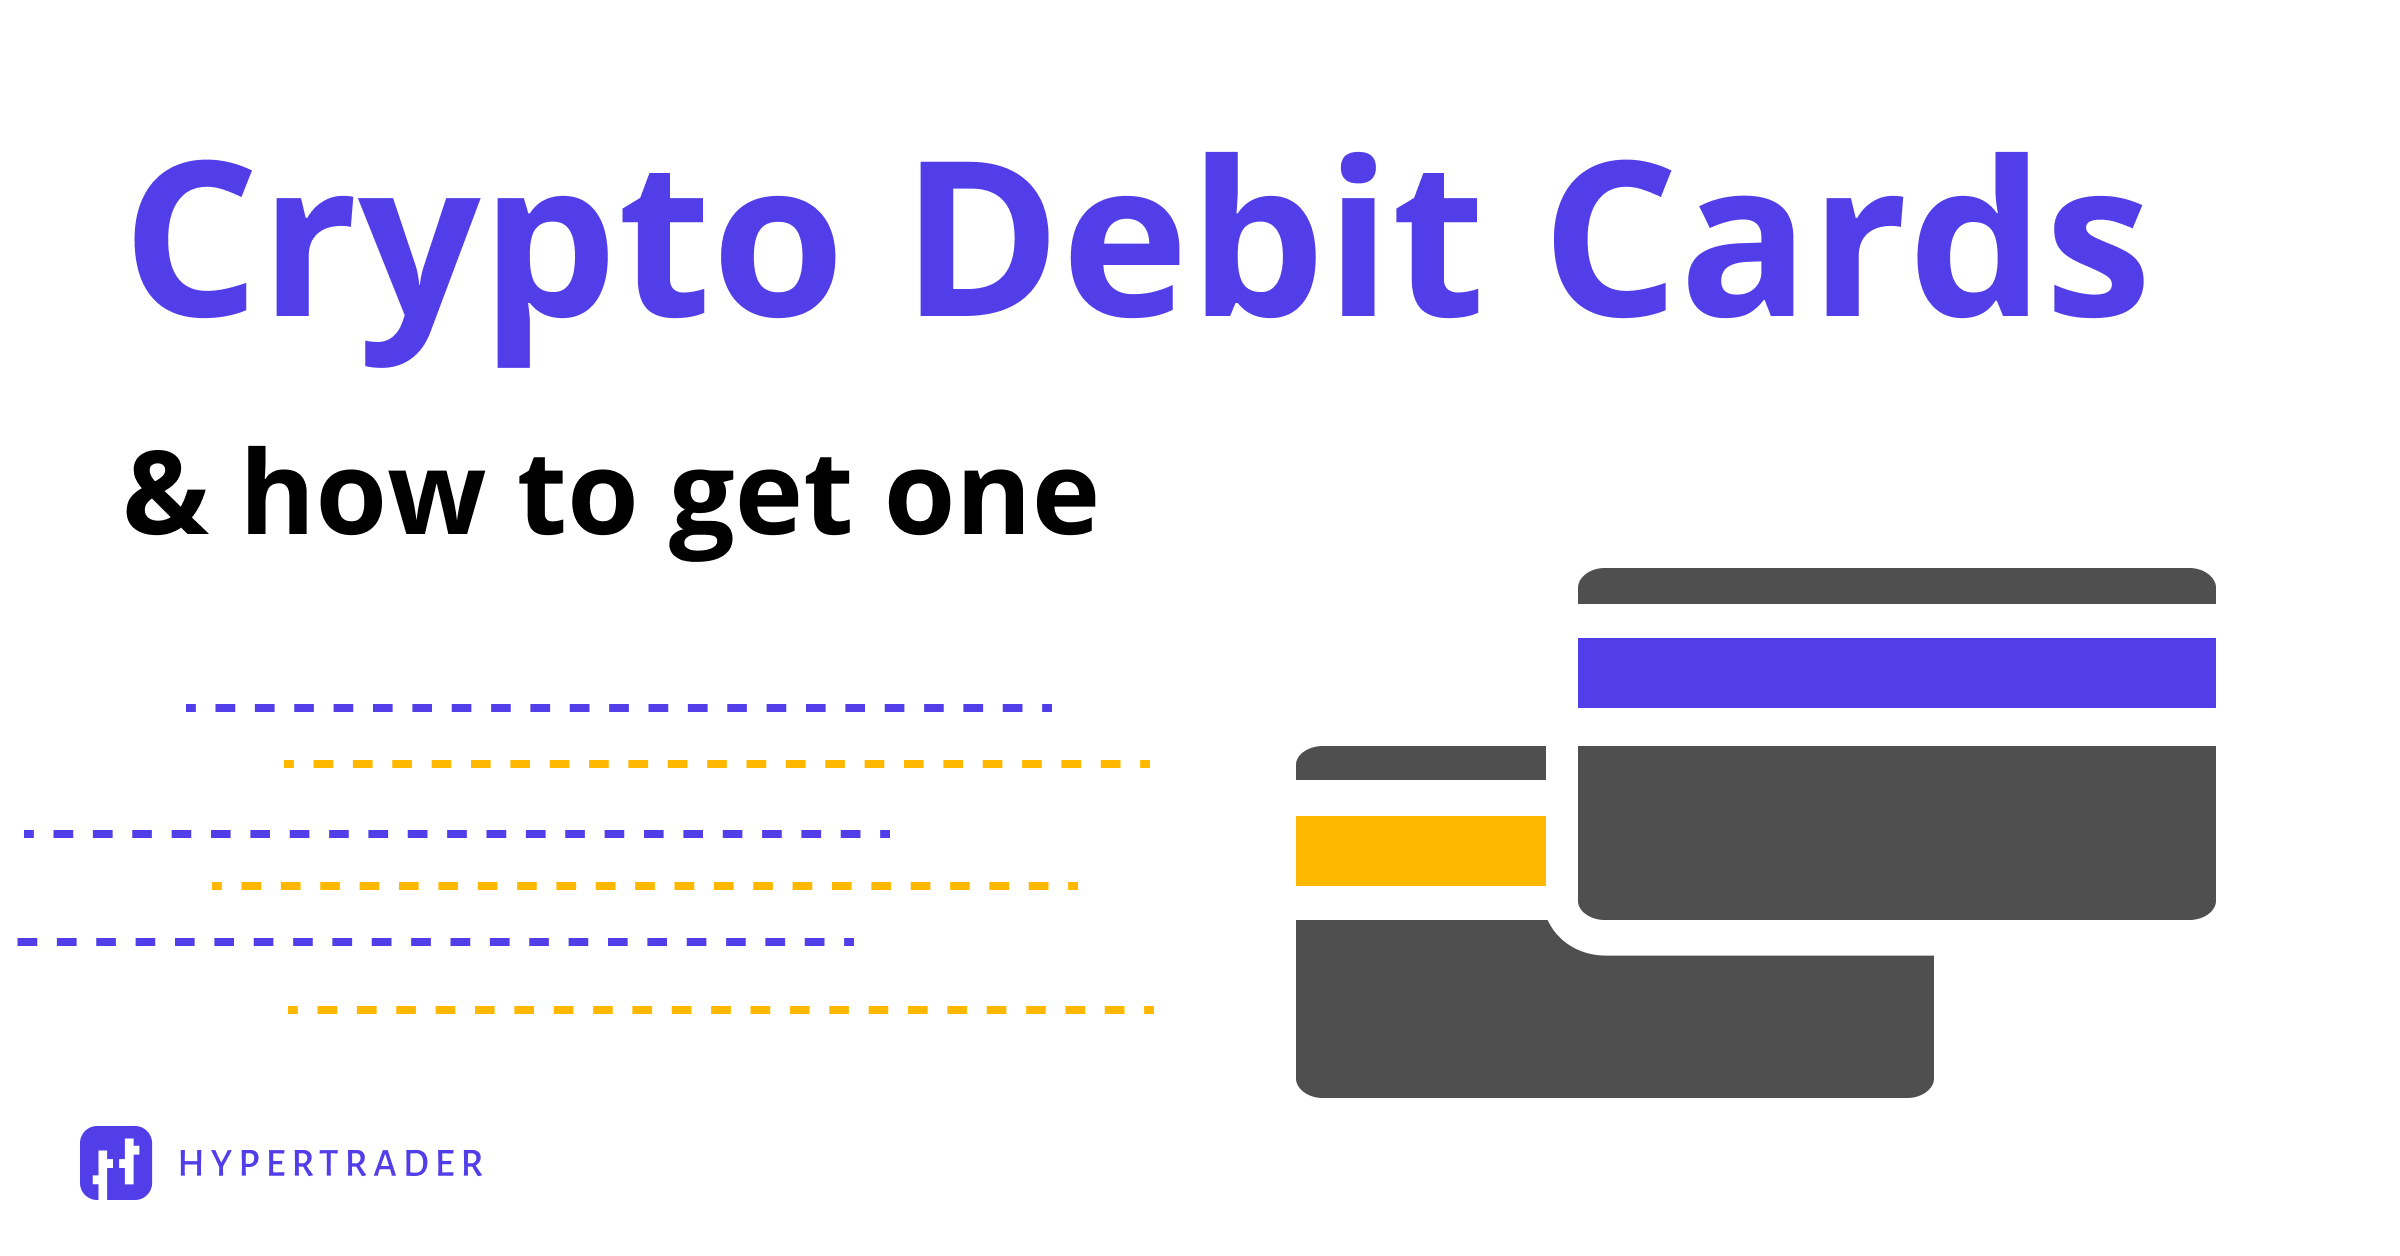 What are Crypto Debit Cards and How to Get One?